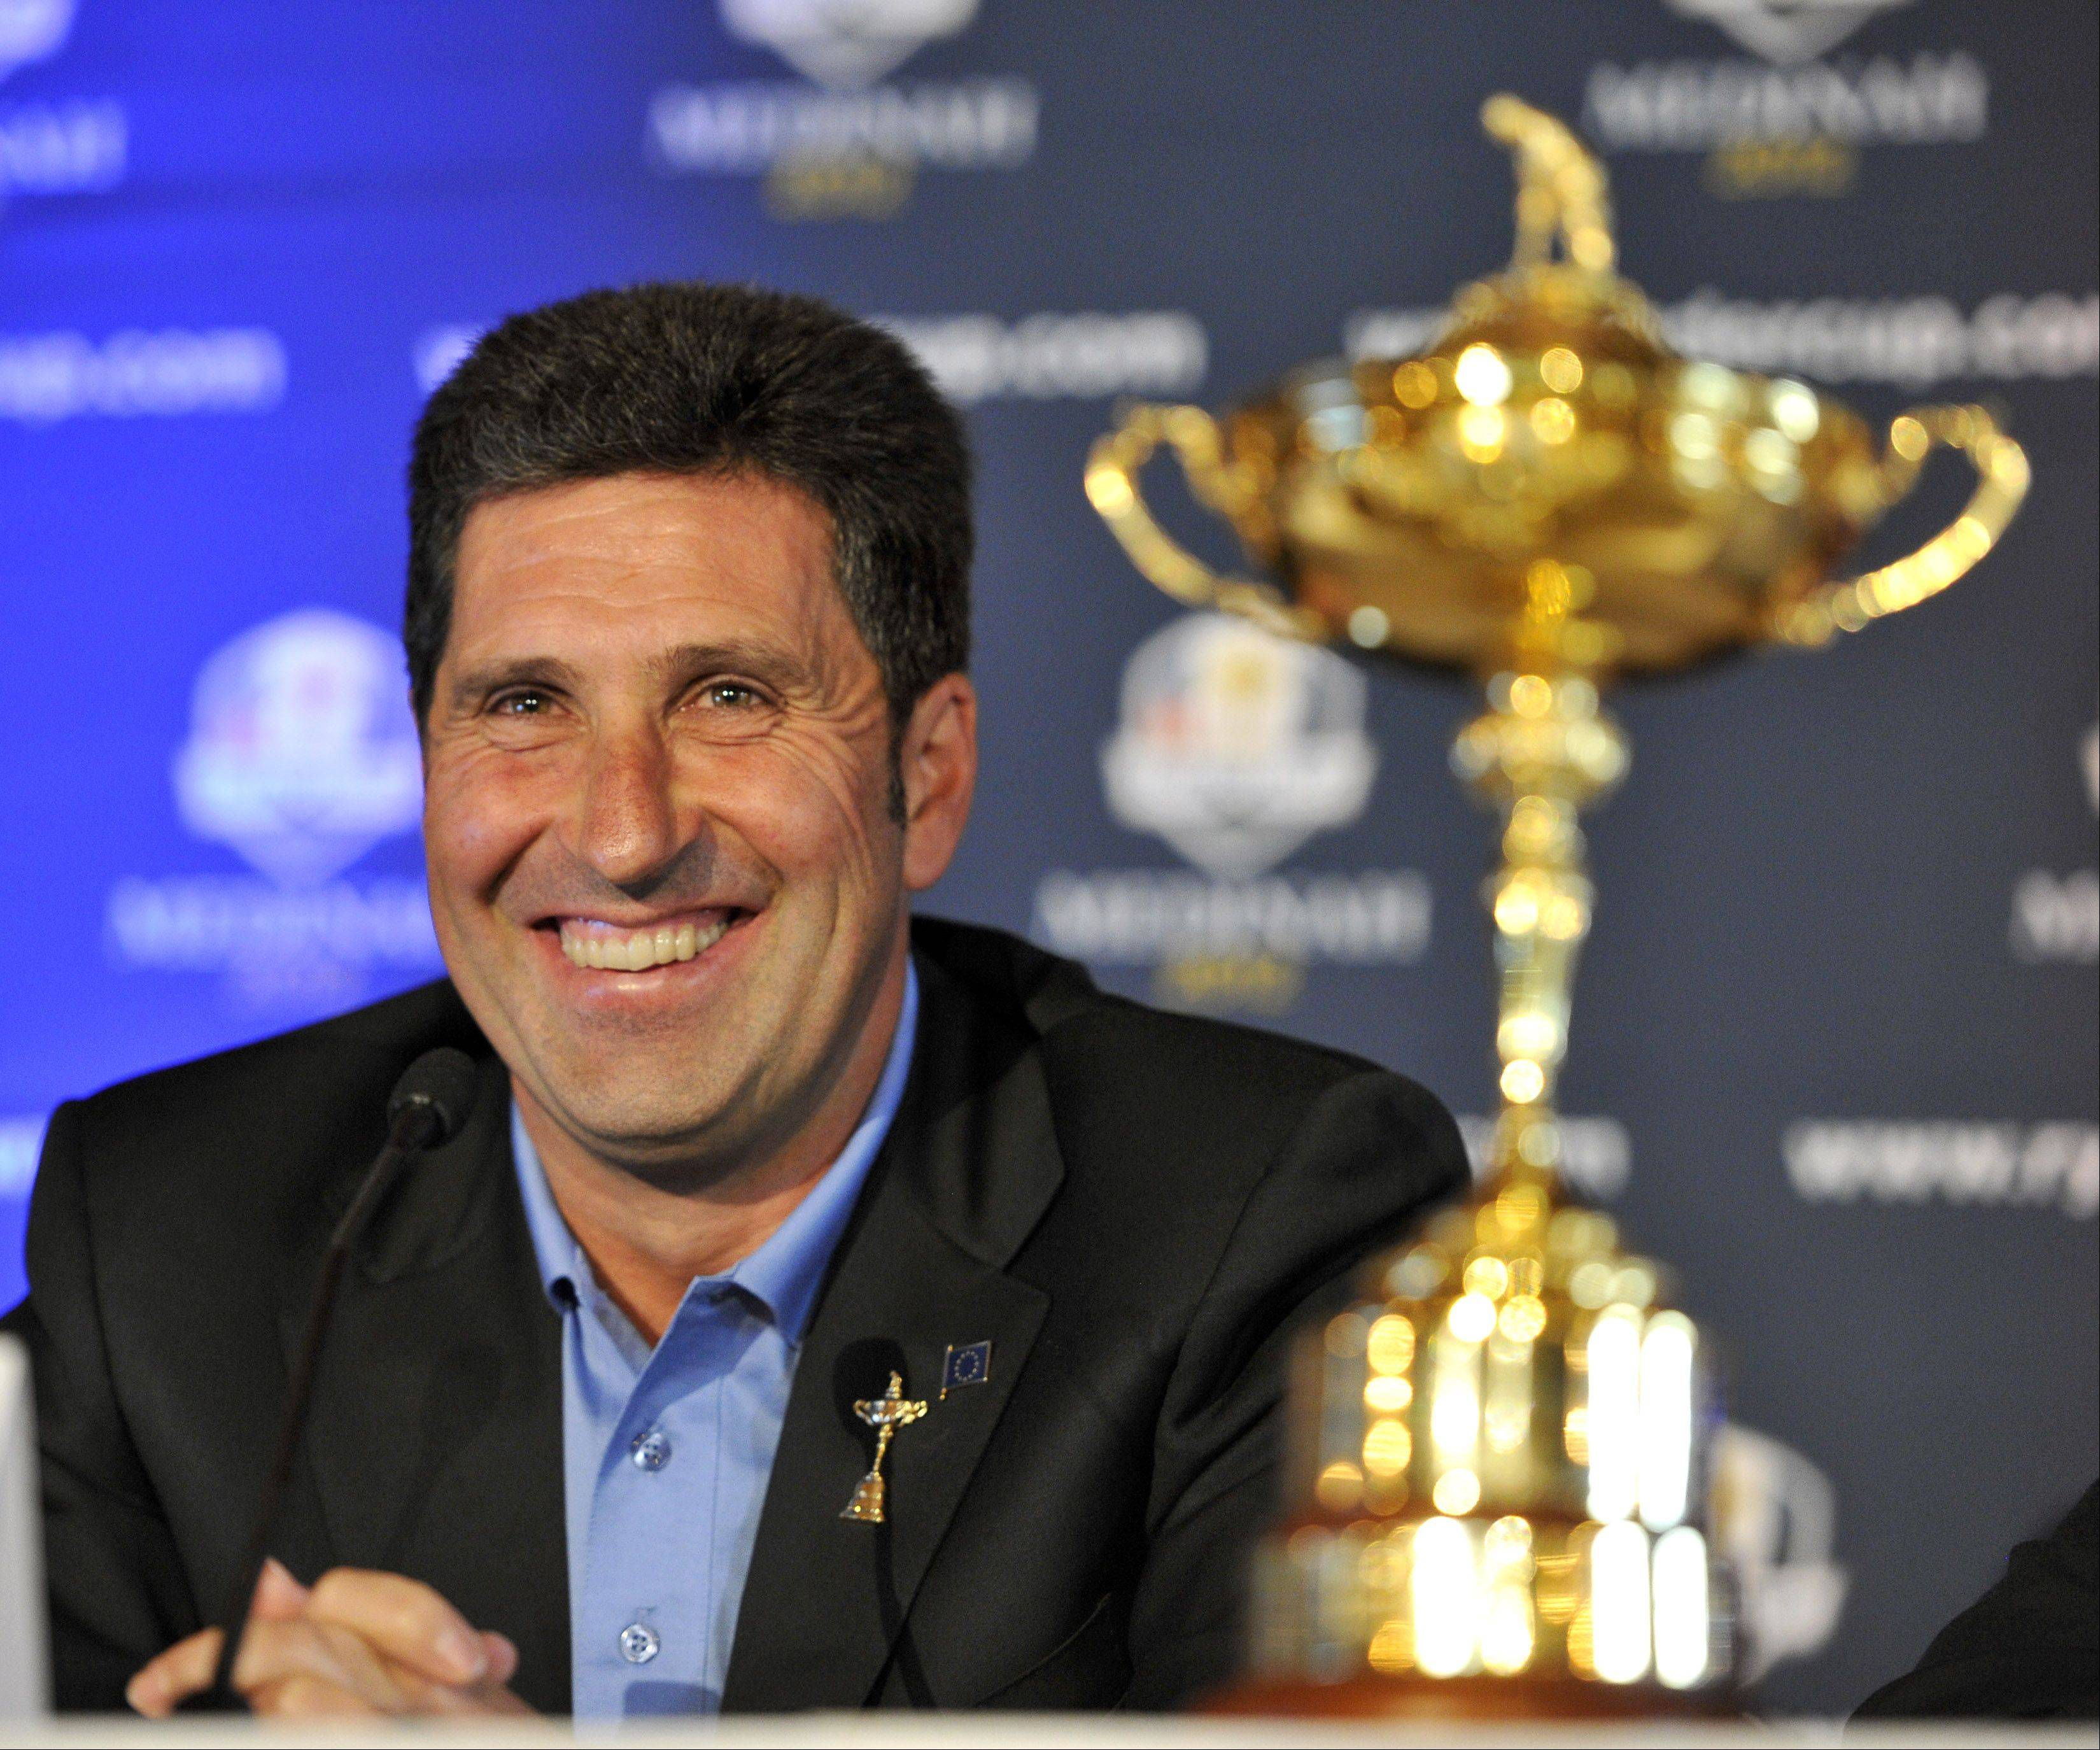 2012 European Ryder Cup captain Jose Mar�a Olazabal has reason to be confident. His team is the defending champion.